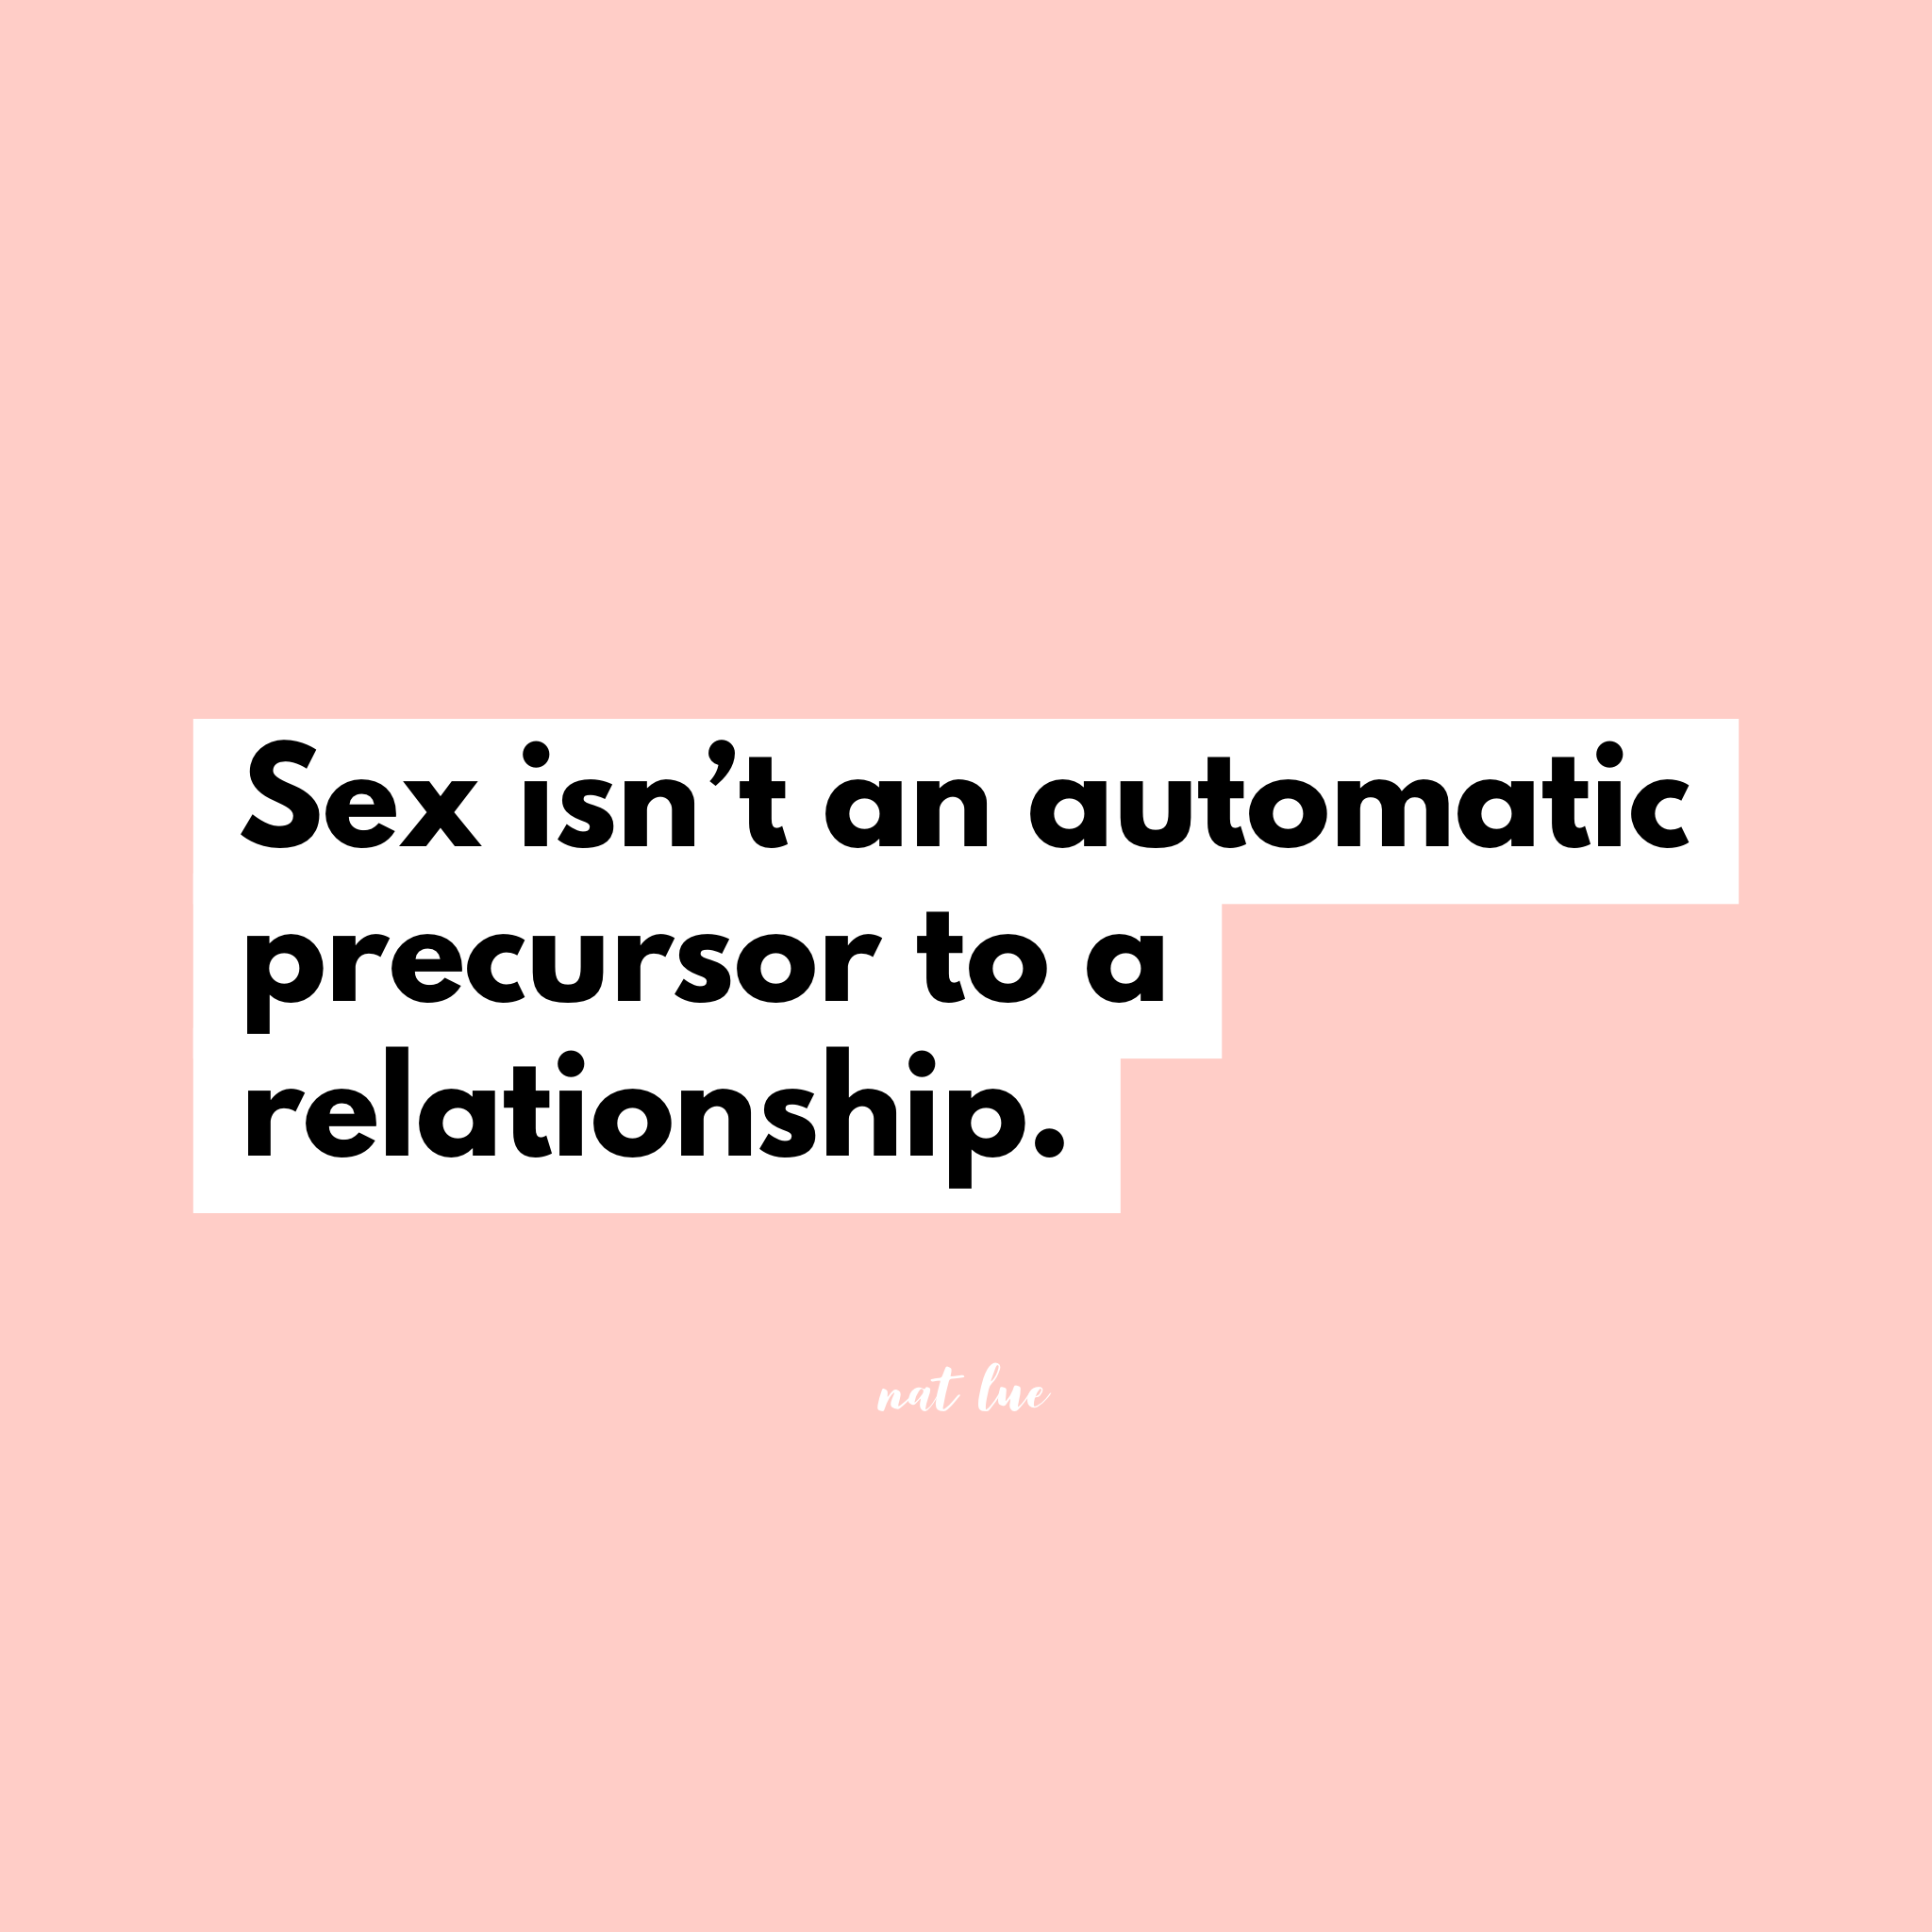 Sex isn't an automatic precursor to a relationship.